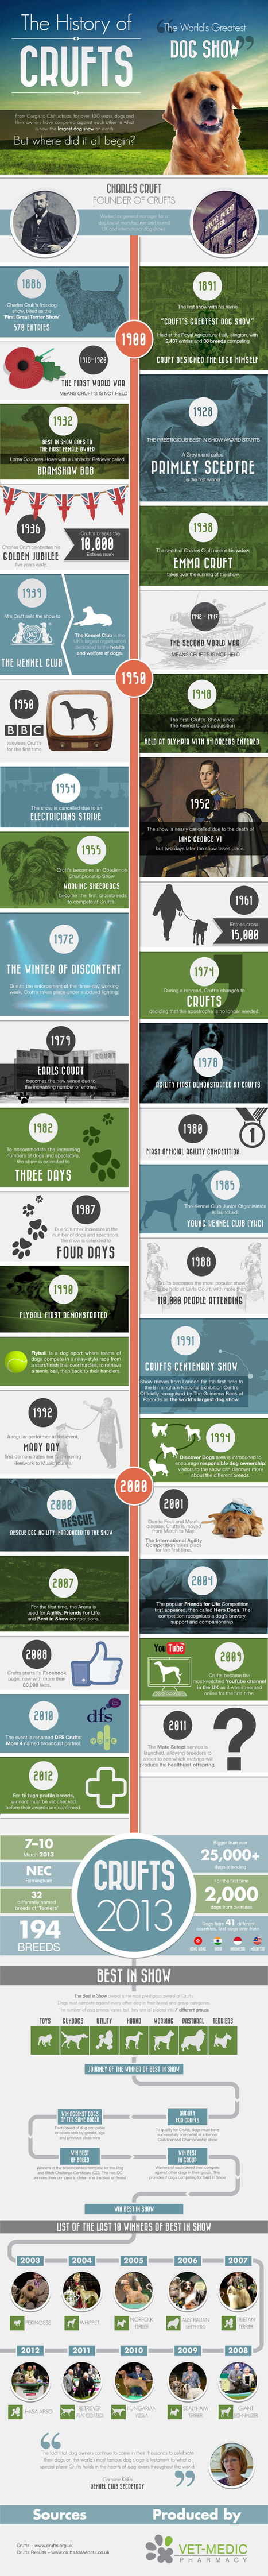 A History of Crufts | Vet Medic Pharmacy [INFOGRAPHIC] | EPIC Infographic | Scoop.it